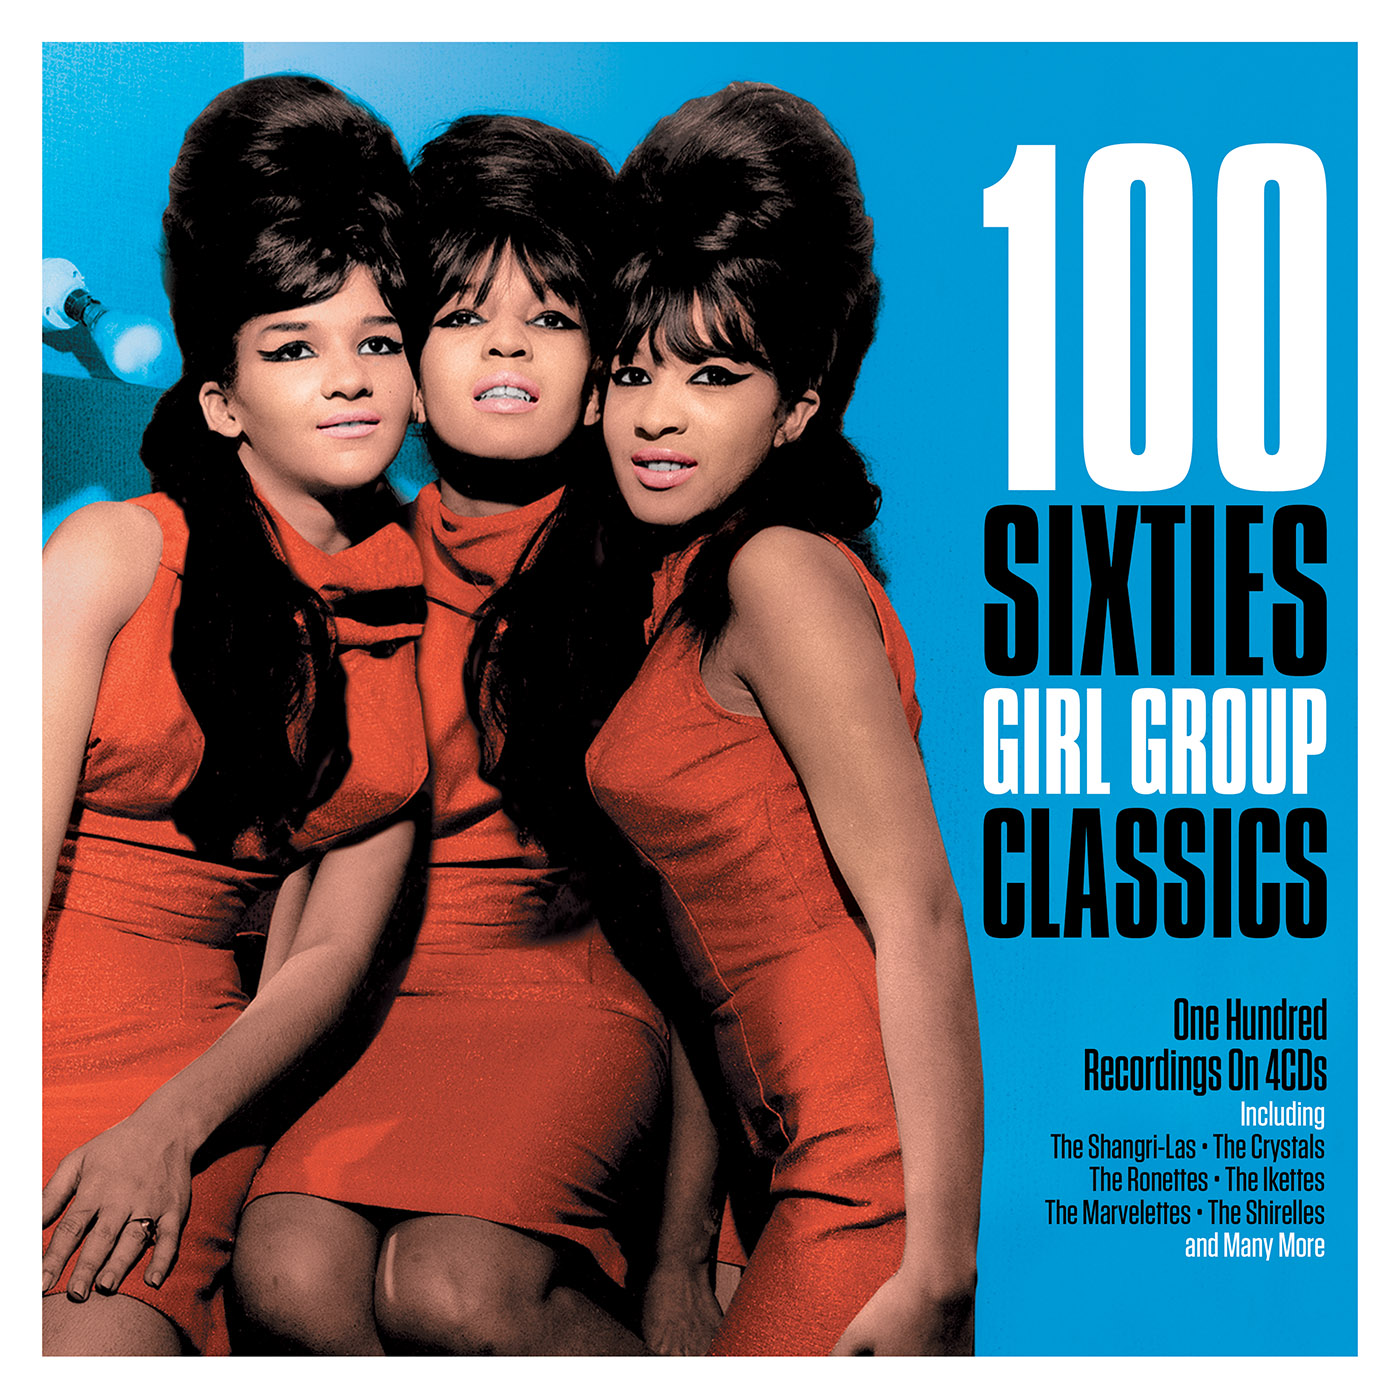 The 100 Group: 100 Sixties Girl Group Classics